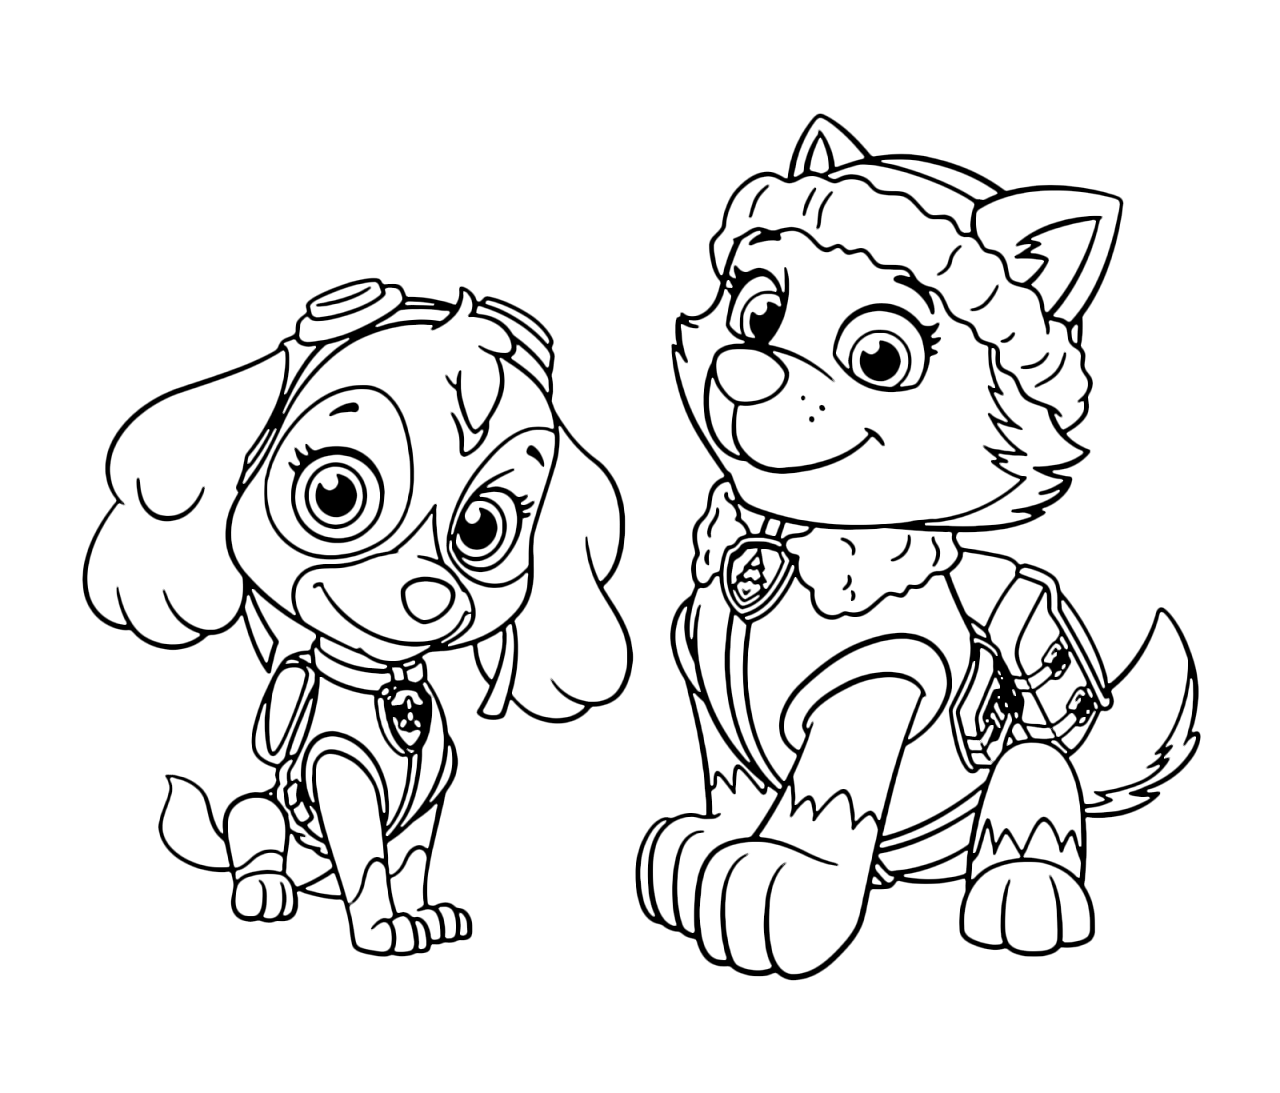 everest paw patrol coloring lesson  kids coloring page